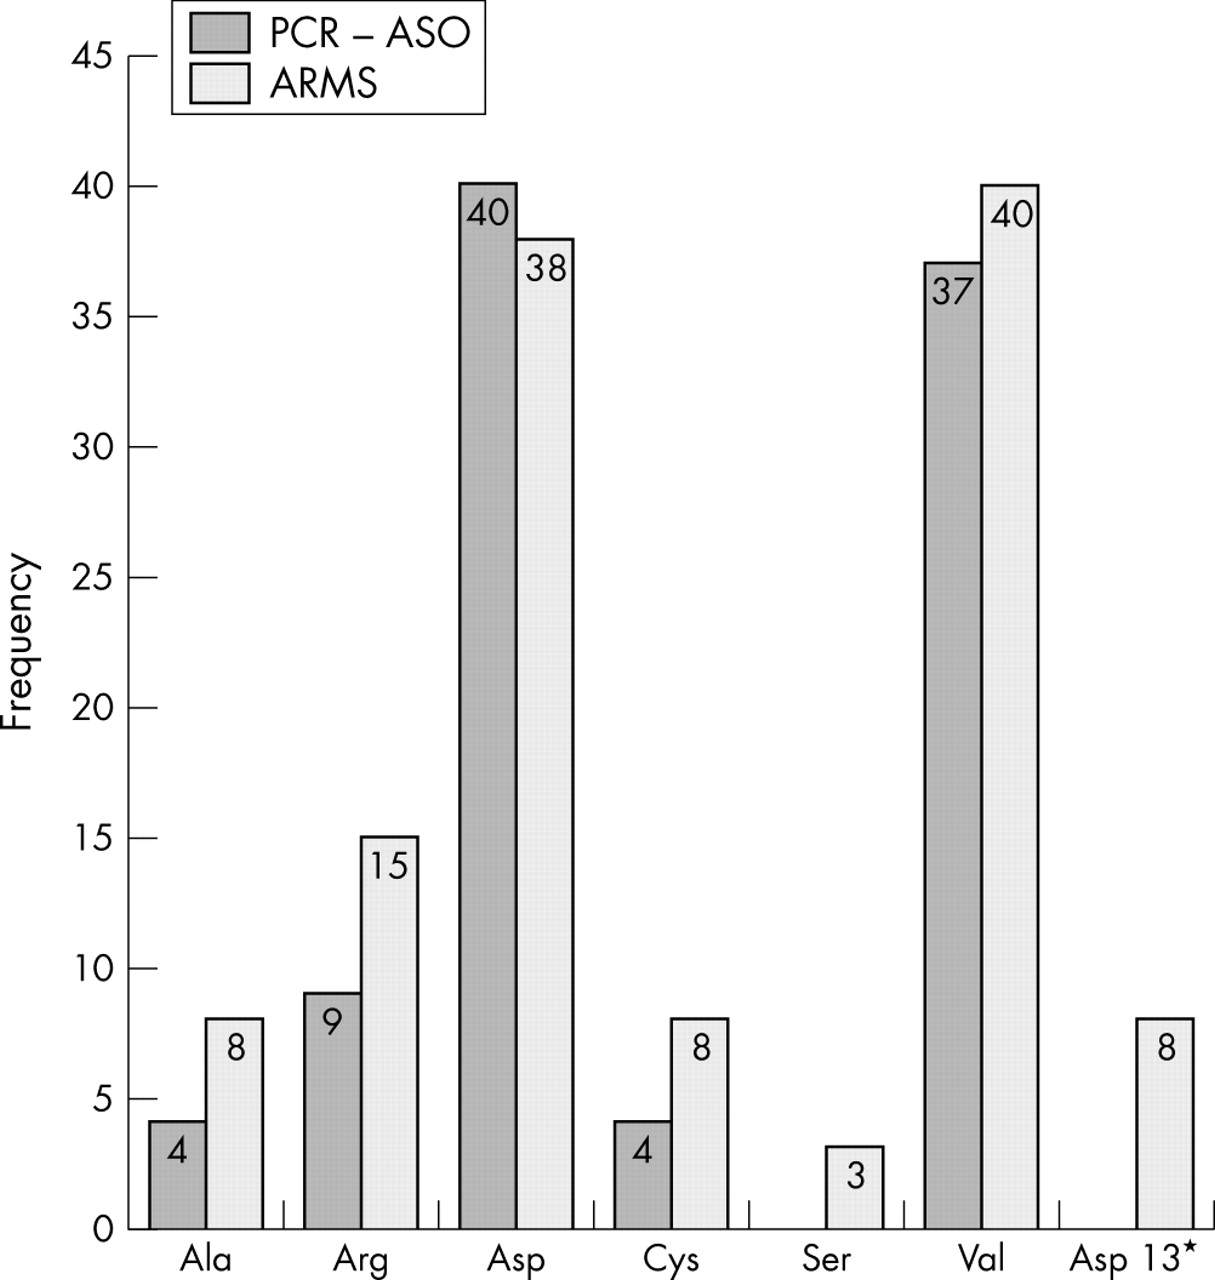 Comparison Of The Novel Quantitative Arms Assay And An Enriched Pcr Aso Assay For K Ras